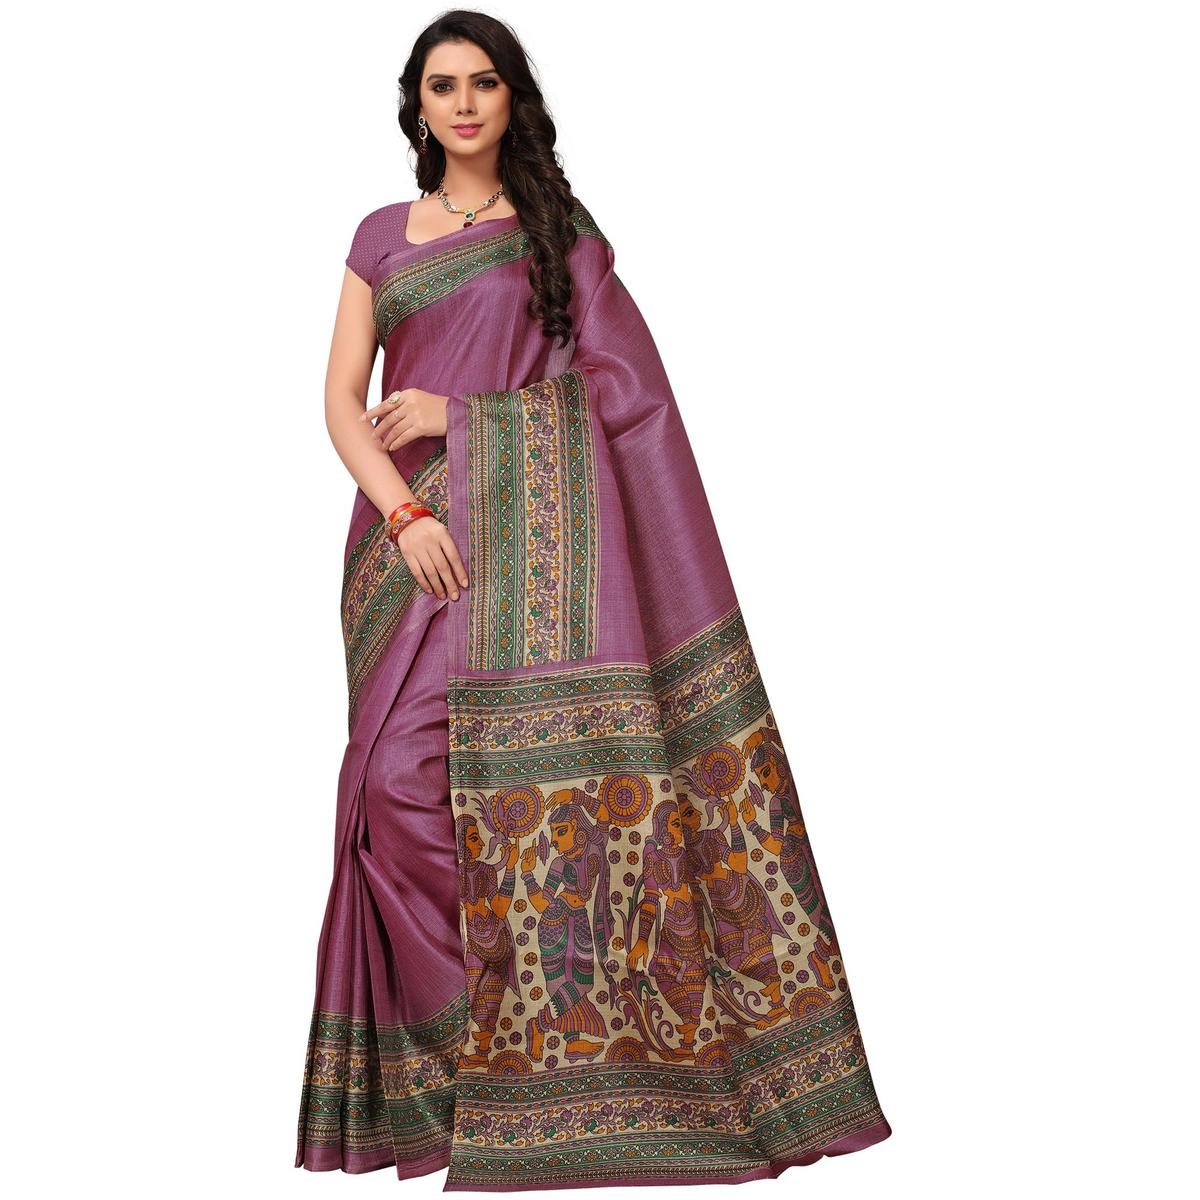 Pretty Light Purple Colored Festive Wear Printed Khadi Jute Silk Saree